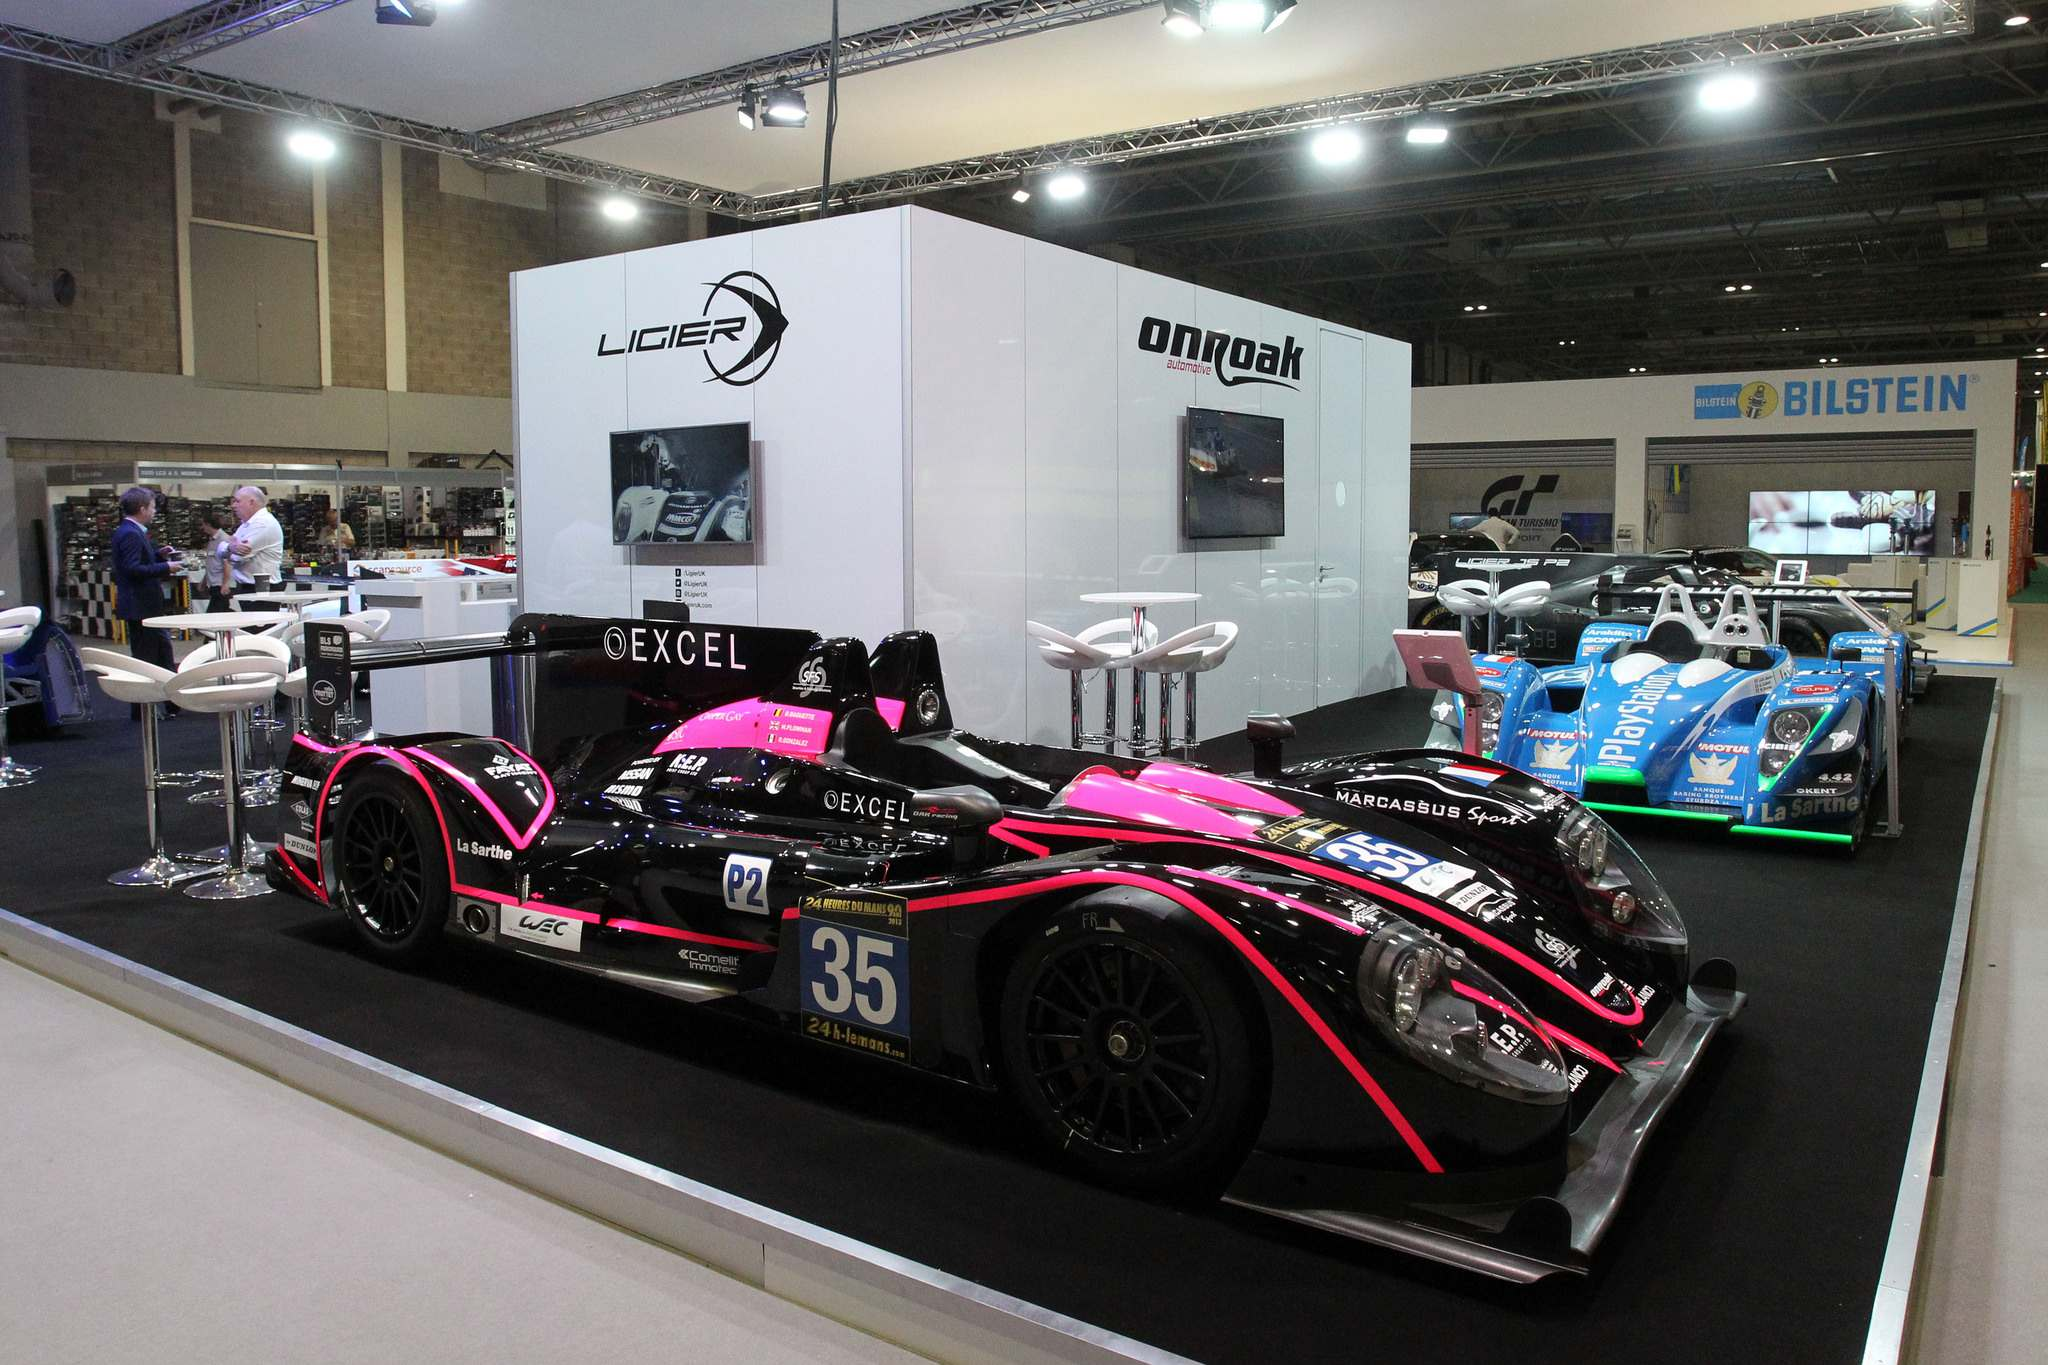 ligier 20185 Ligier at Autosport International Show 2018